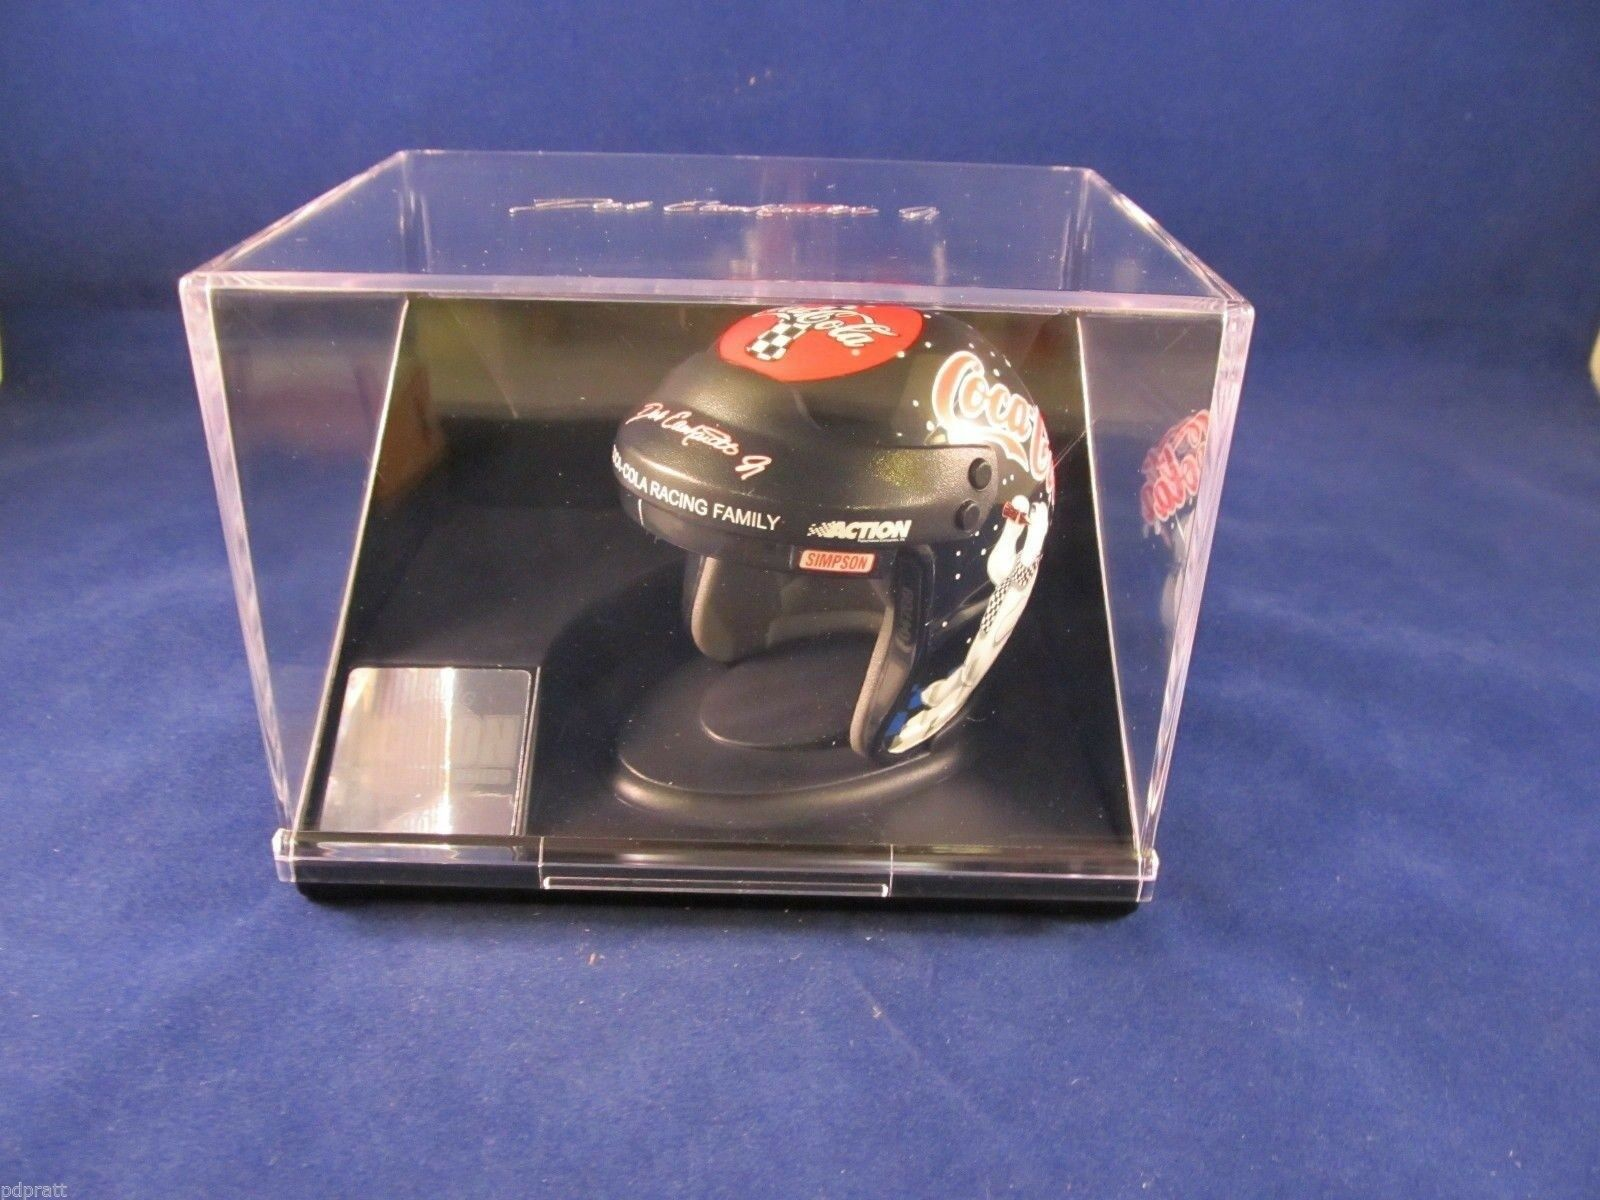 DALE EARNHARDT JR. 1 4 SCALE COCA-COLA NASCAR RACING HELMET MINT IN DISPLAY CASE